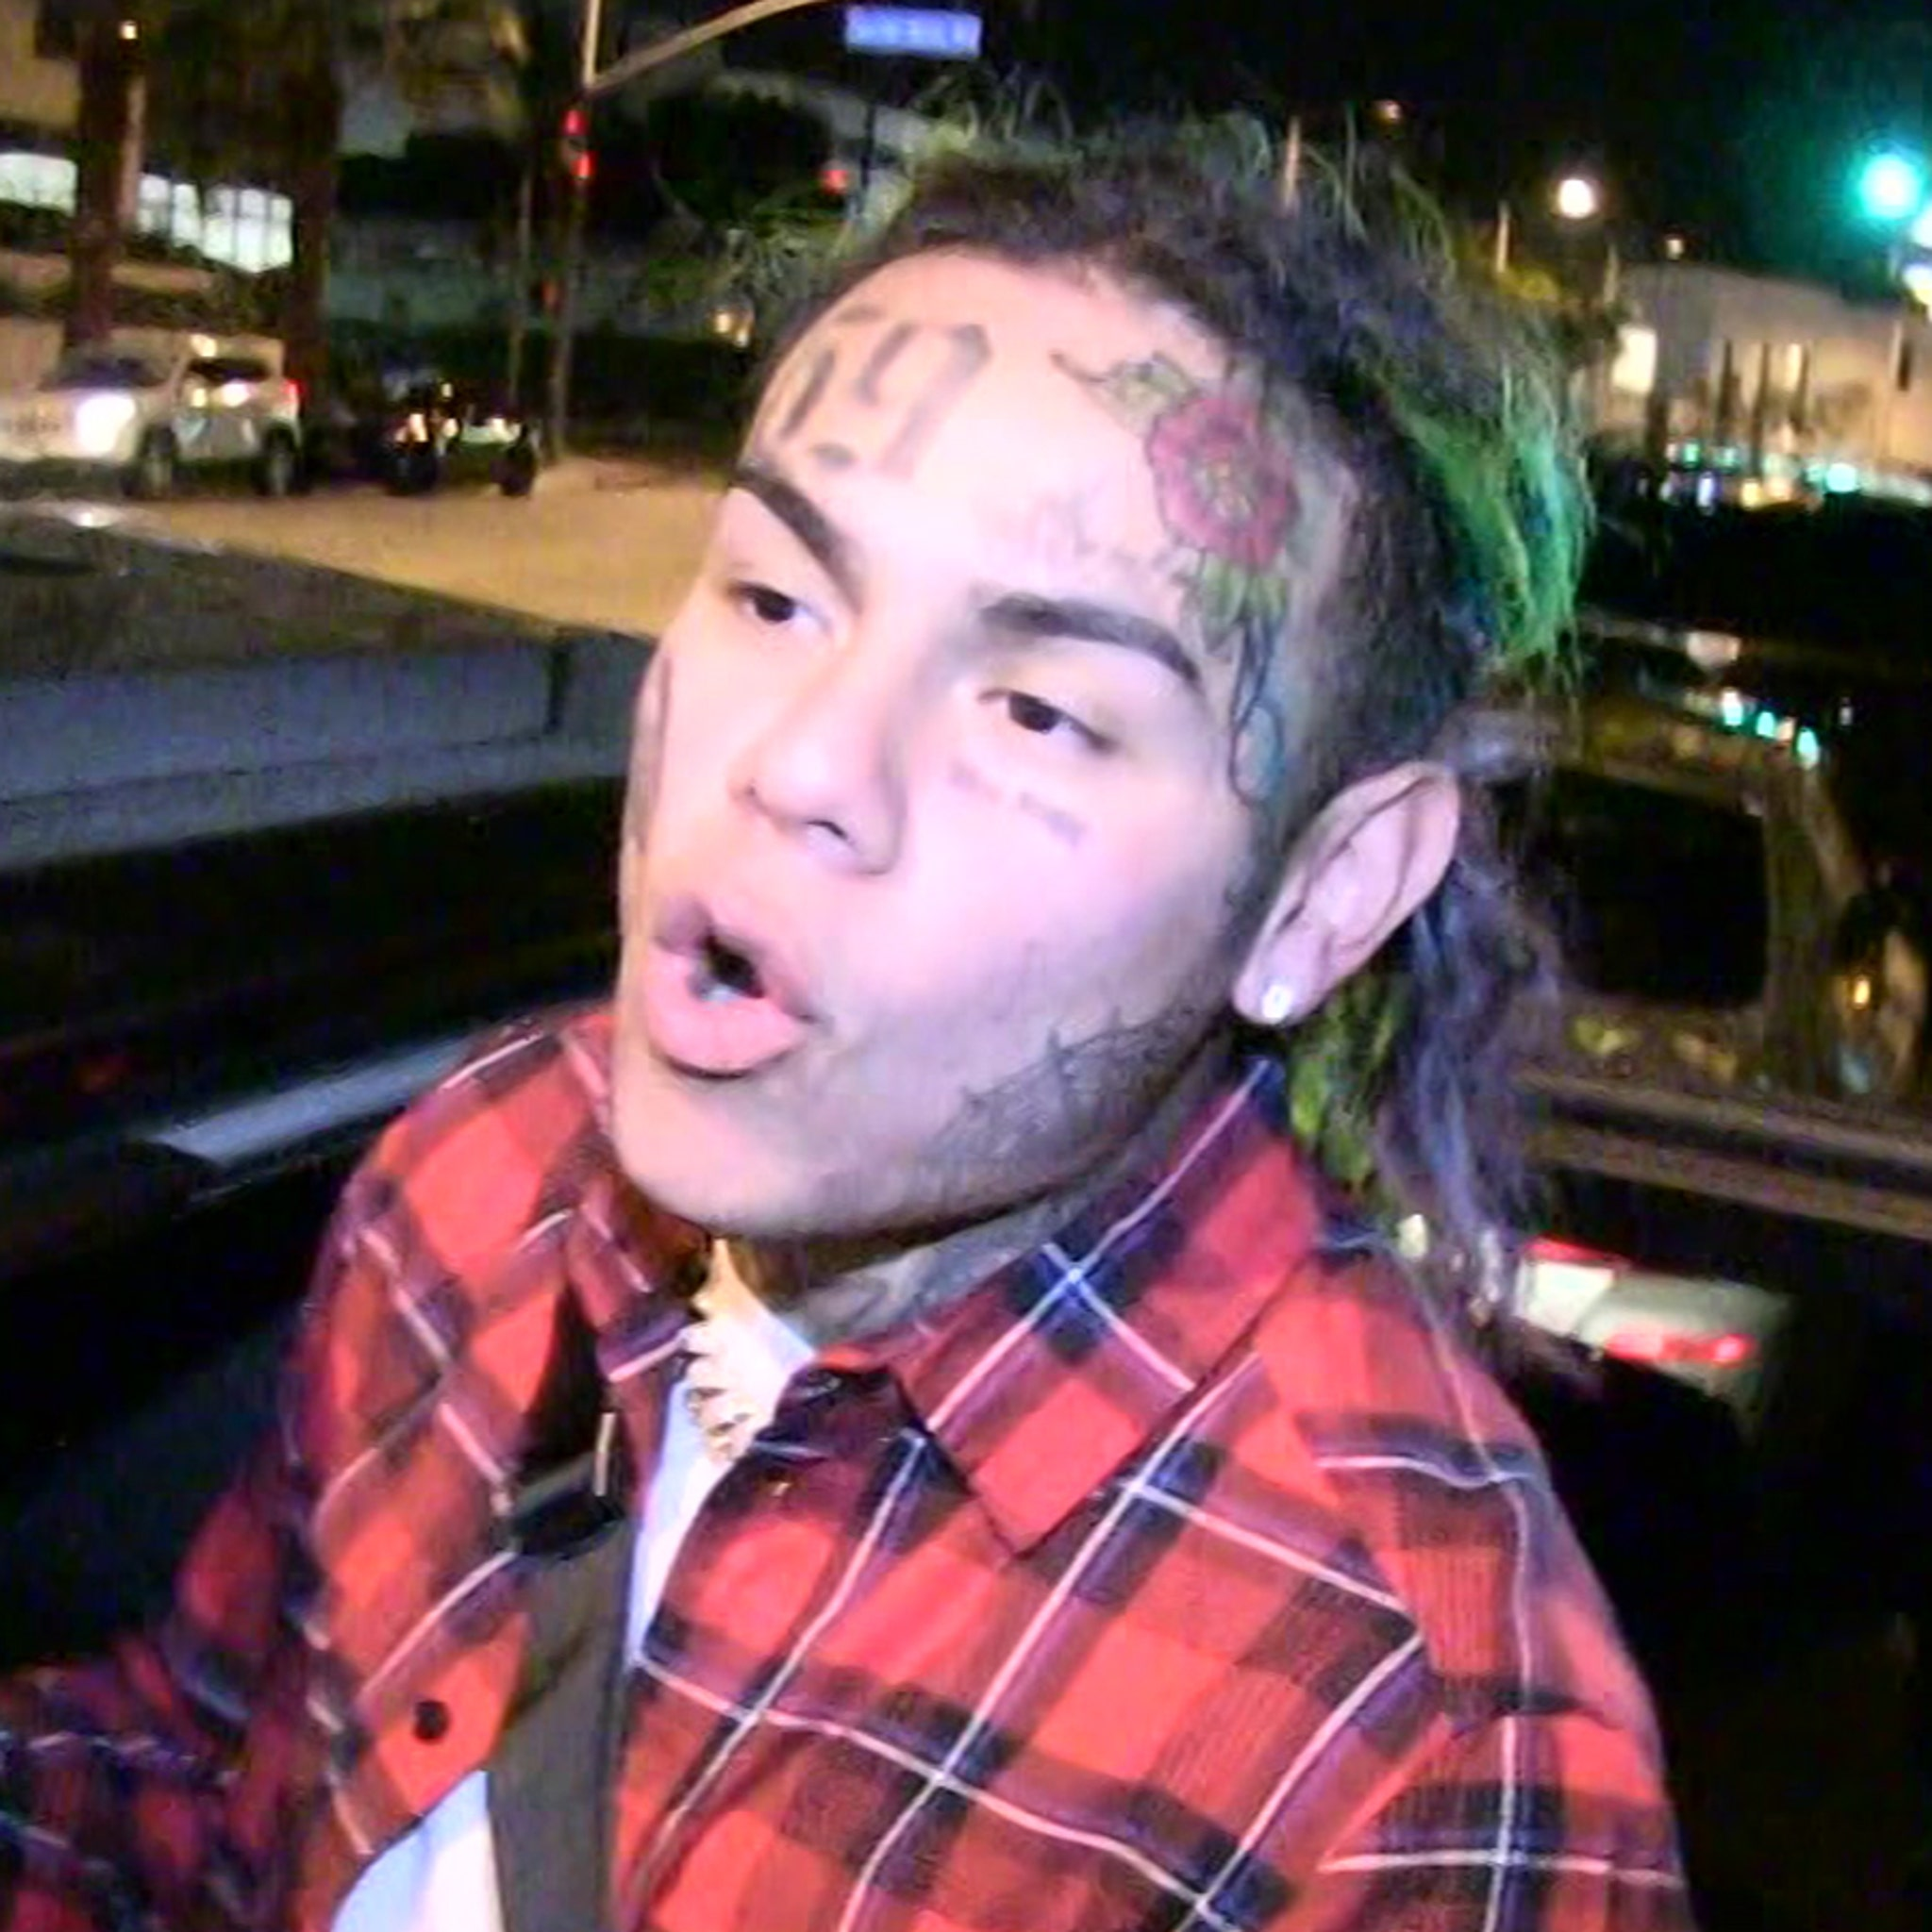 Tekashi 6ix9ine Fears for His Family as Kidnapping Trial Approaches